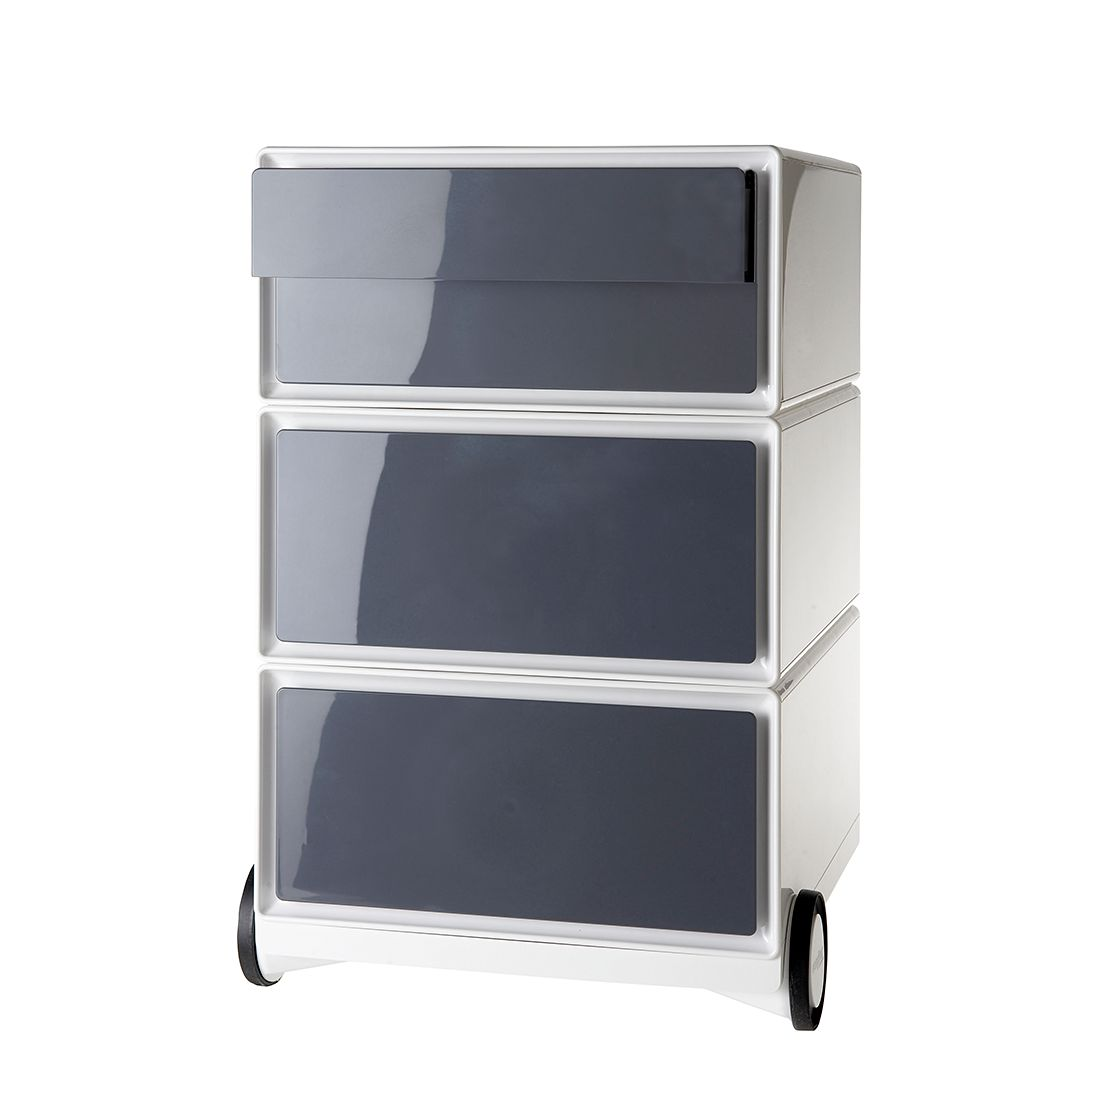 home24 Rollcontainer easyBox II   Büro > Büroschränke > Rollcontainer   Grau   Kunststoff   easyOffice by Paperflow